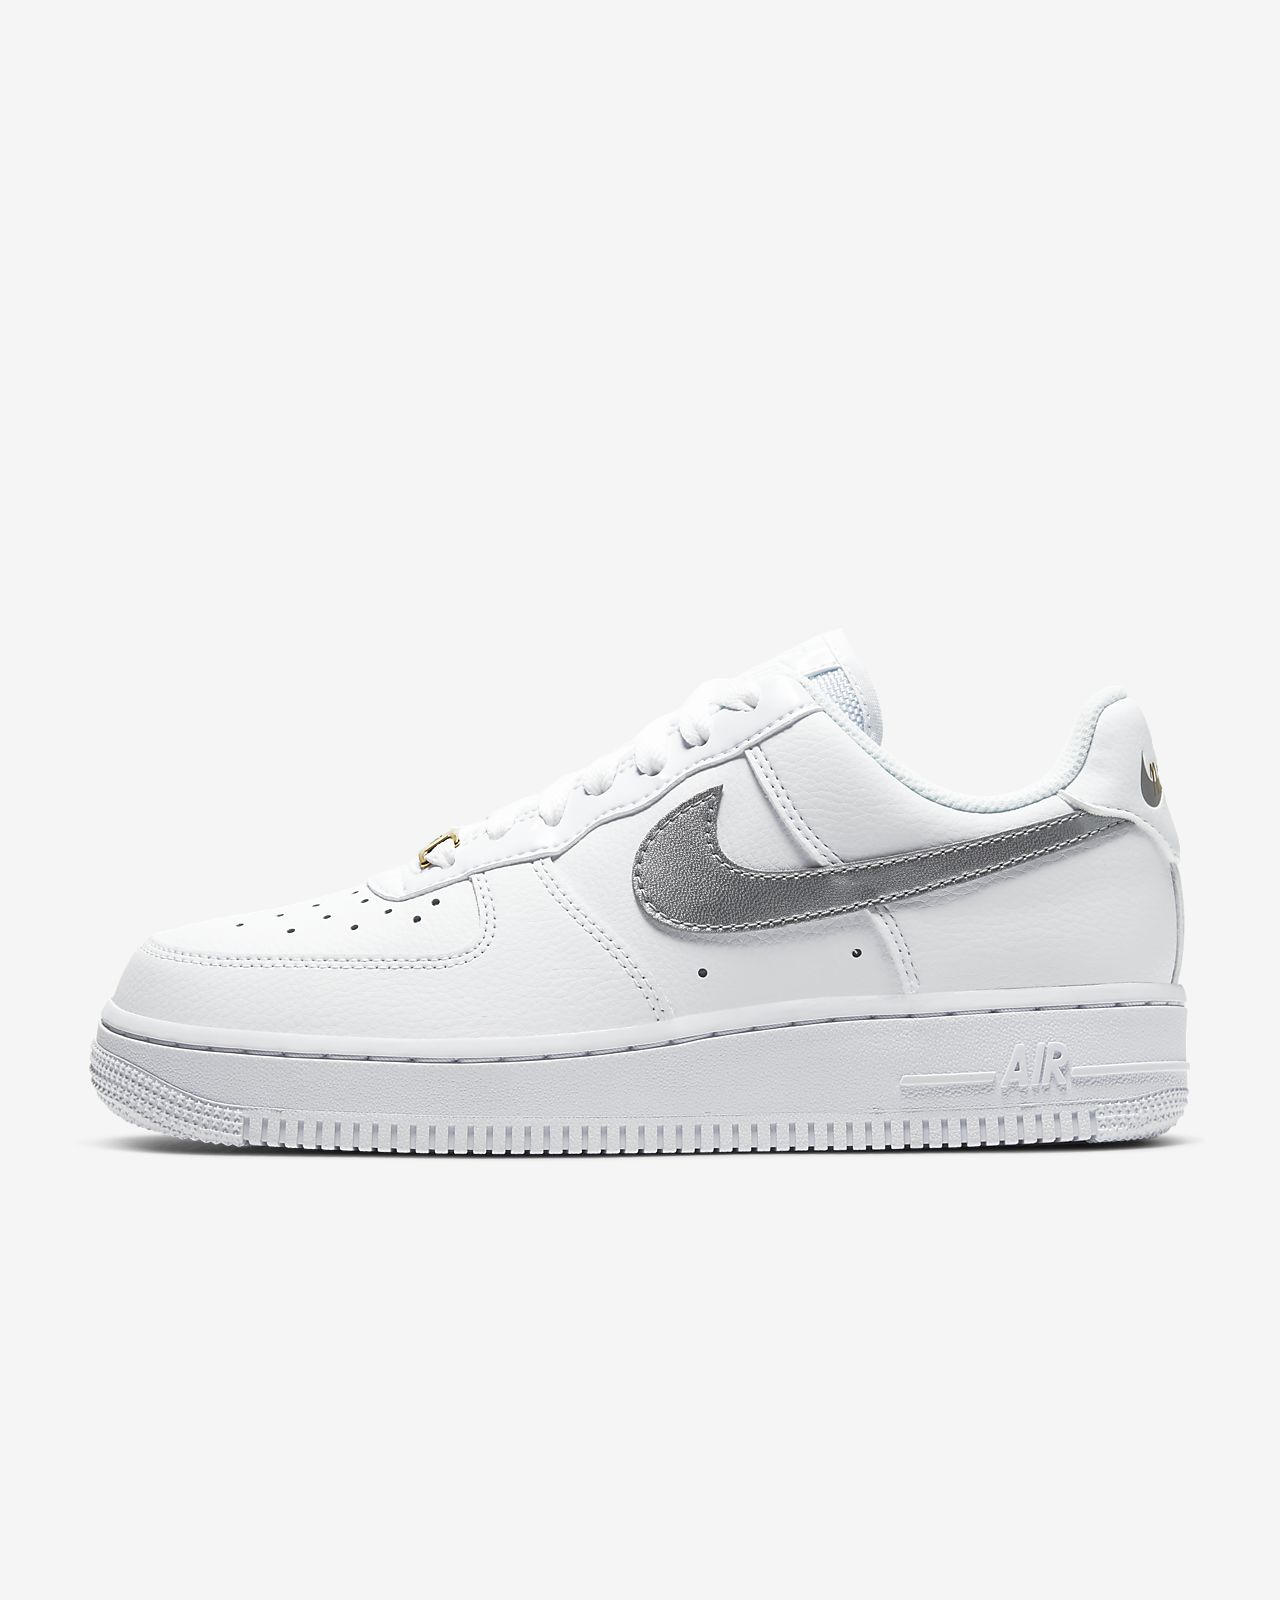 Nike Air Force 1 Low Damenschuh